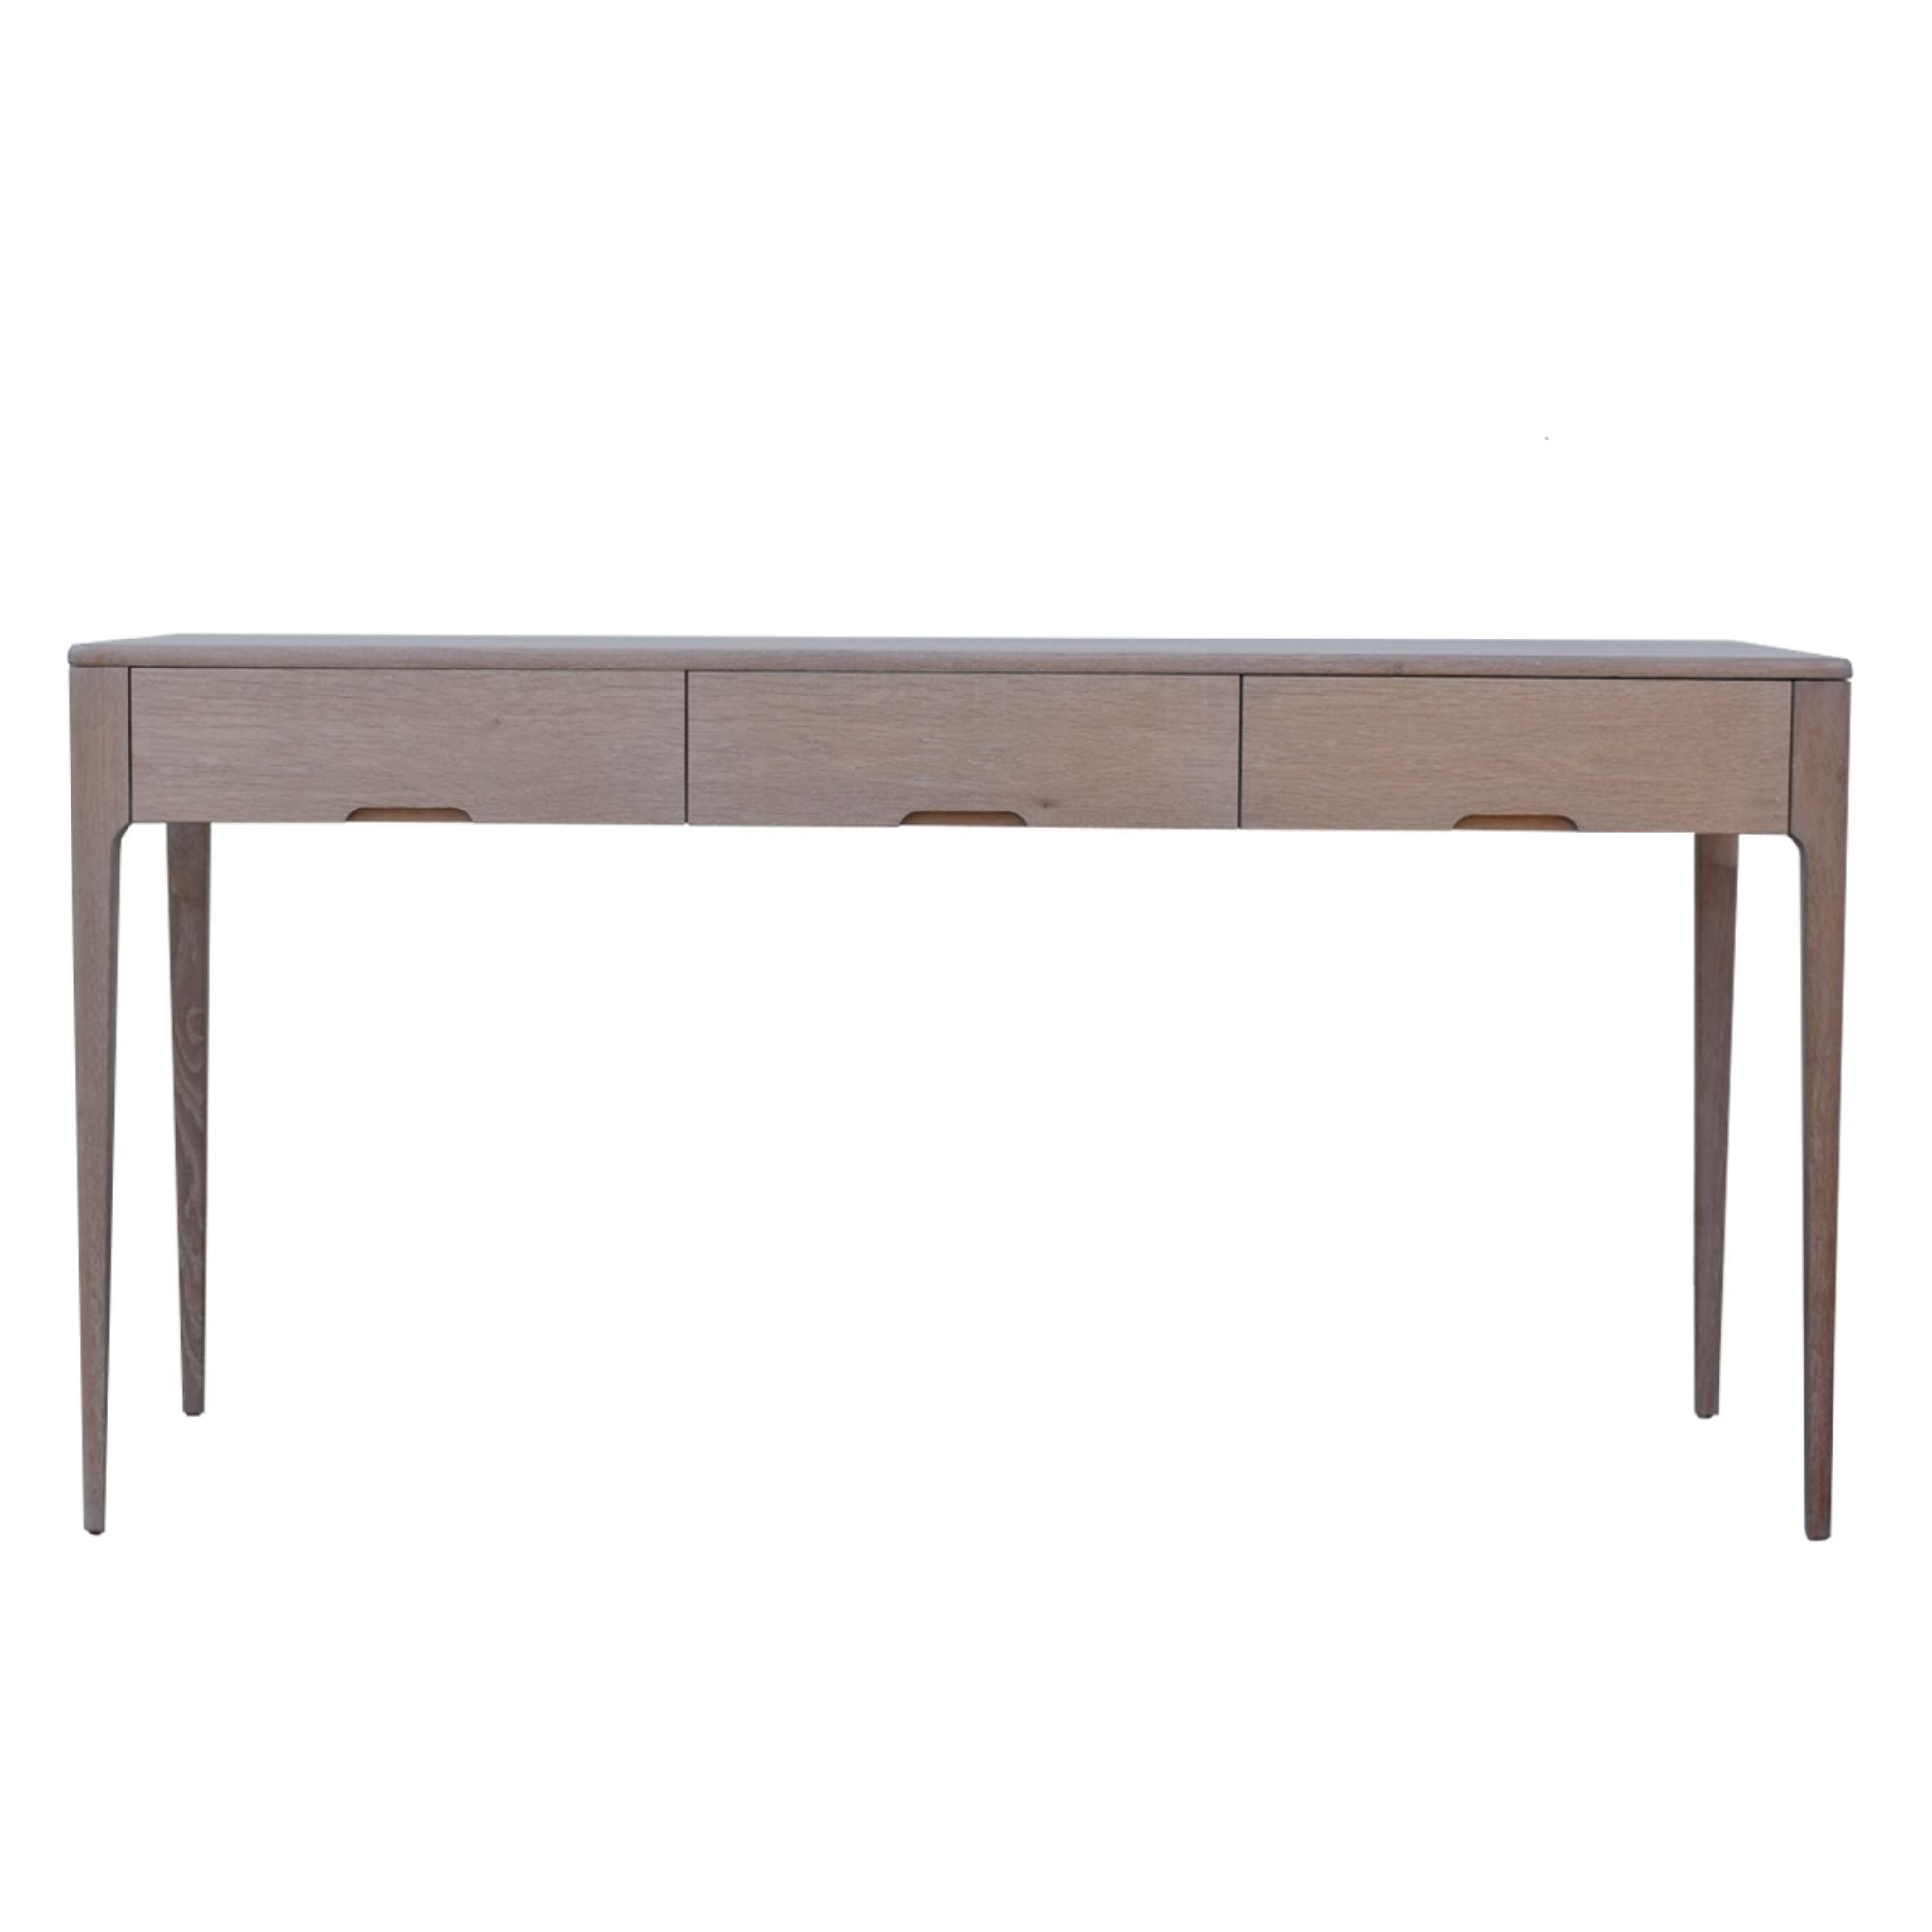 Outeniqua Dresser 3 Drawer - KNUS